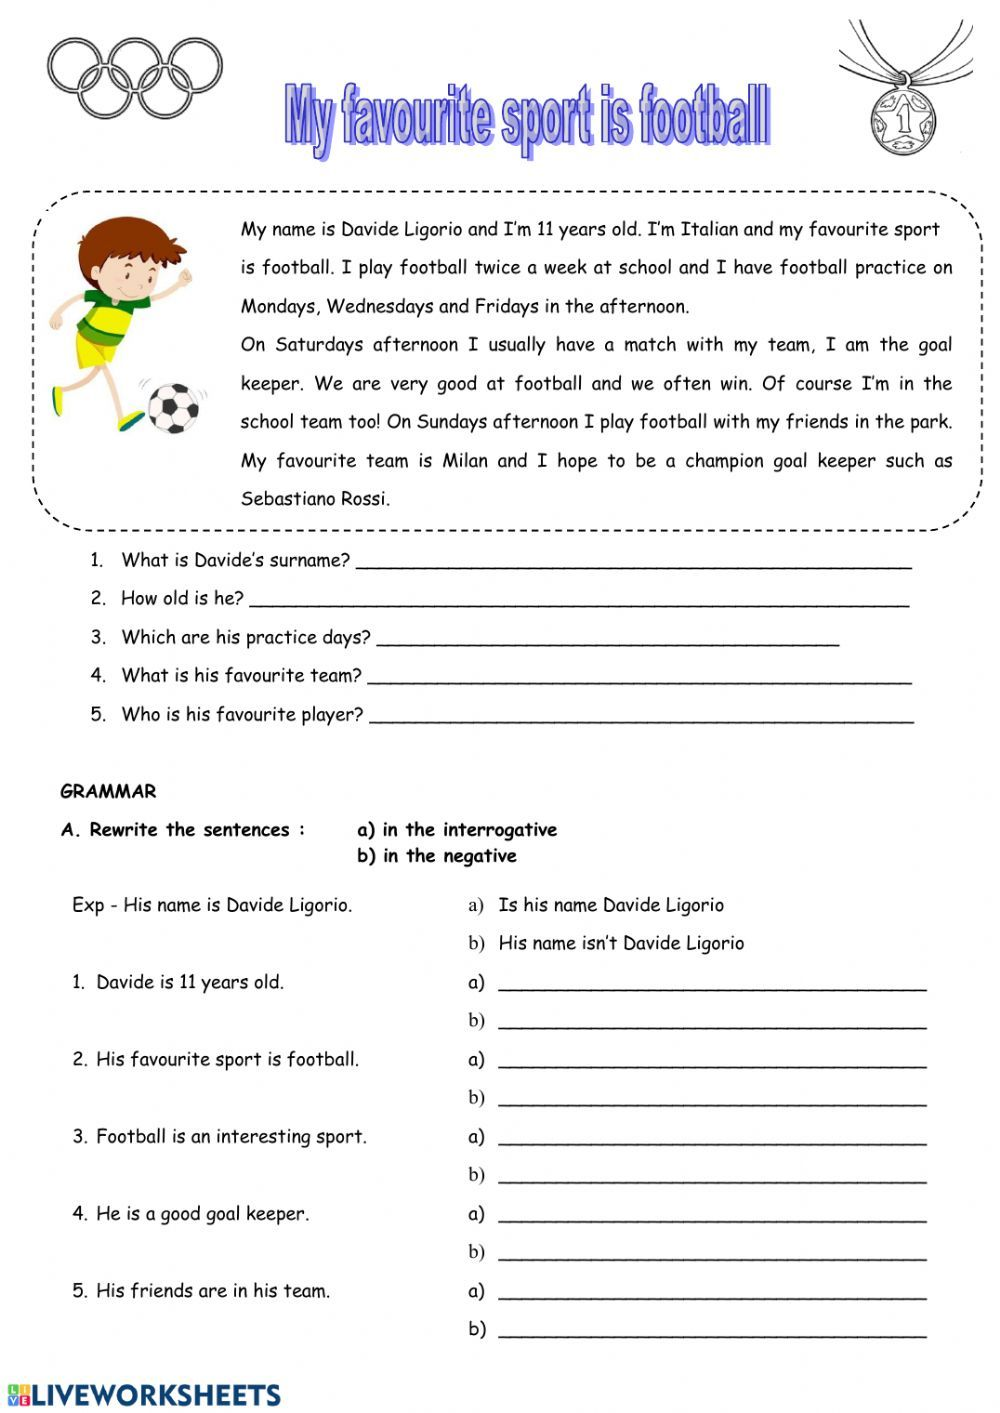 My Favourite Sport Is Football Interactive Worksheet Reading Comprehension Worksheets English Lessons Vocabulary Worksheets [ 1413 x 1000 Pixel ]